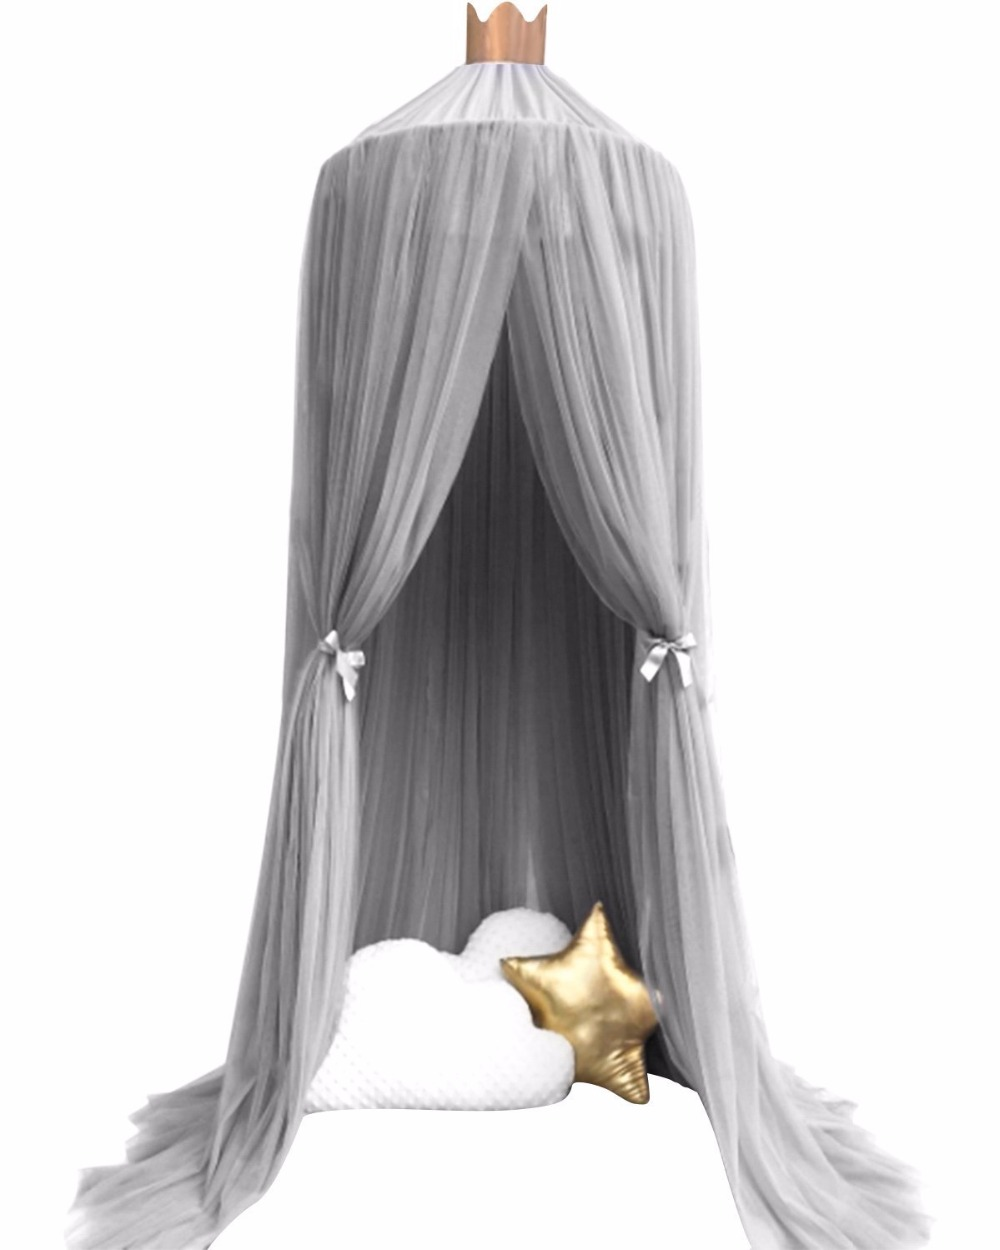 10 Layers 3 Colors Pink Gray And White Gauze Toddler Kids Mosquito Net Princess Bed Canopy Dome Netting